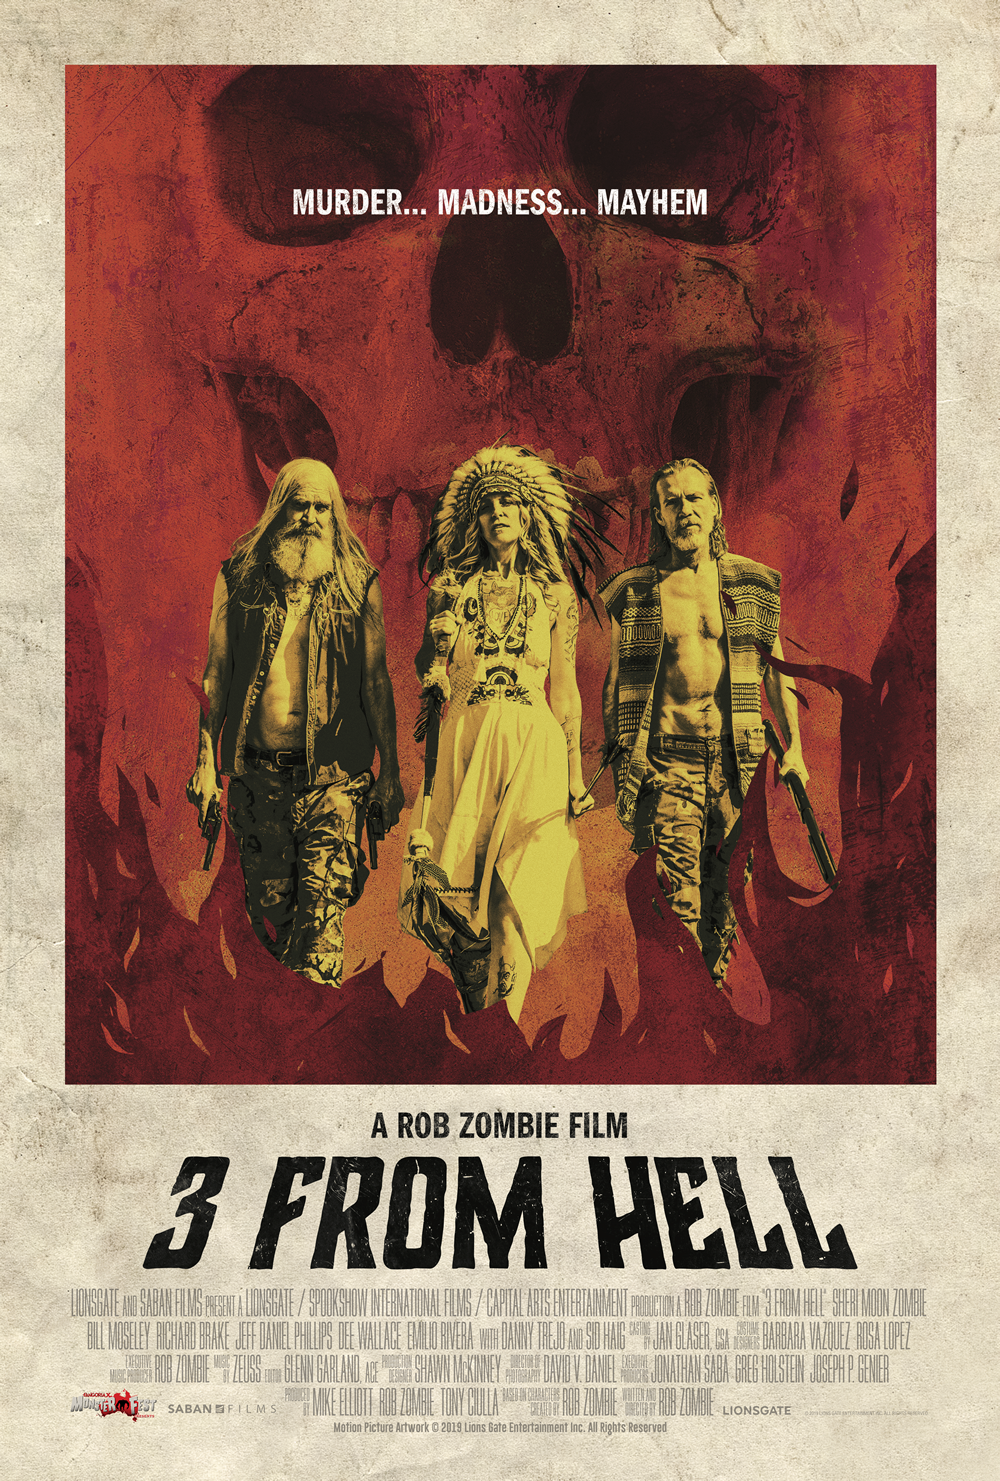 3 From Hell - Poster (Small)